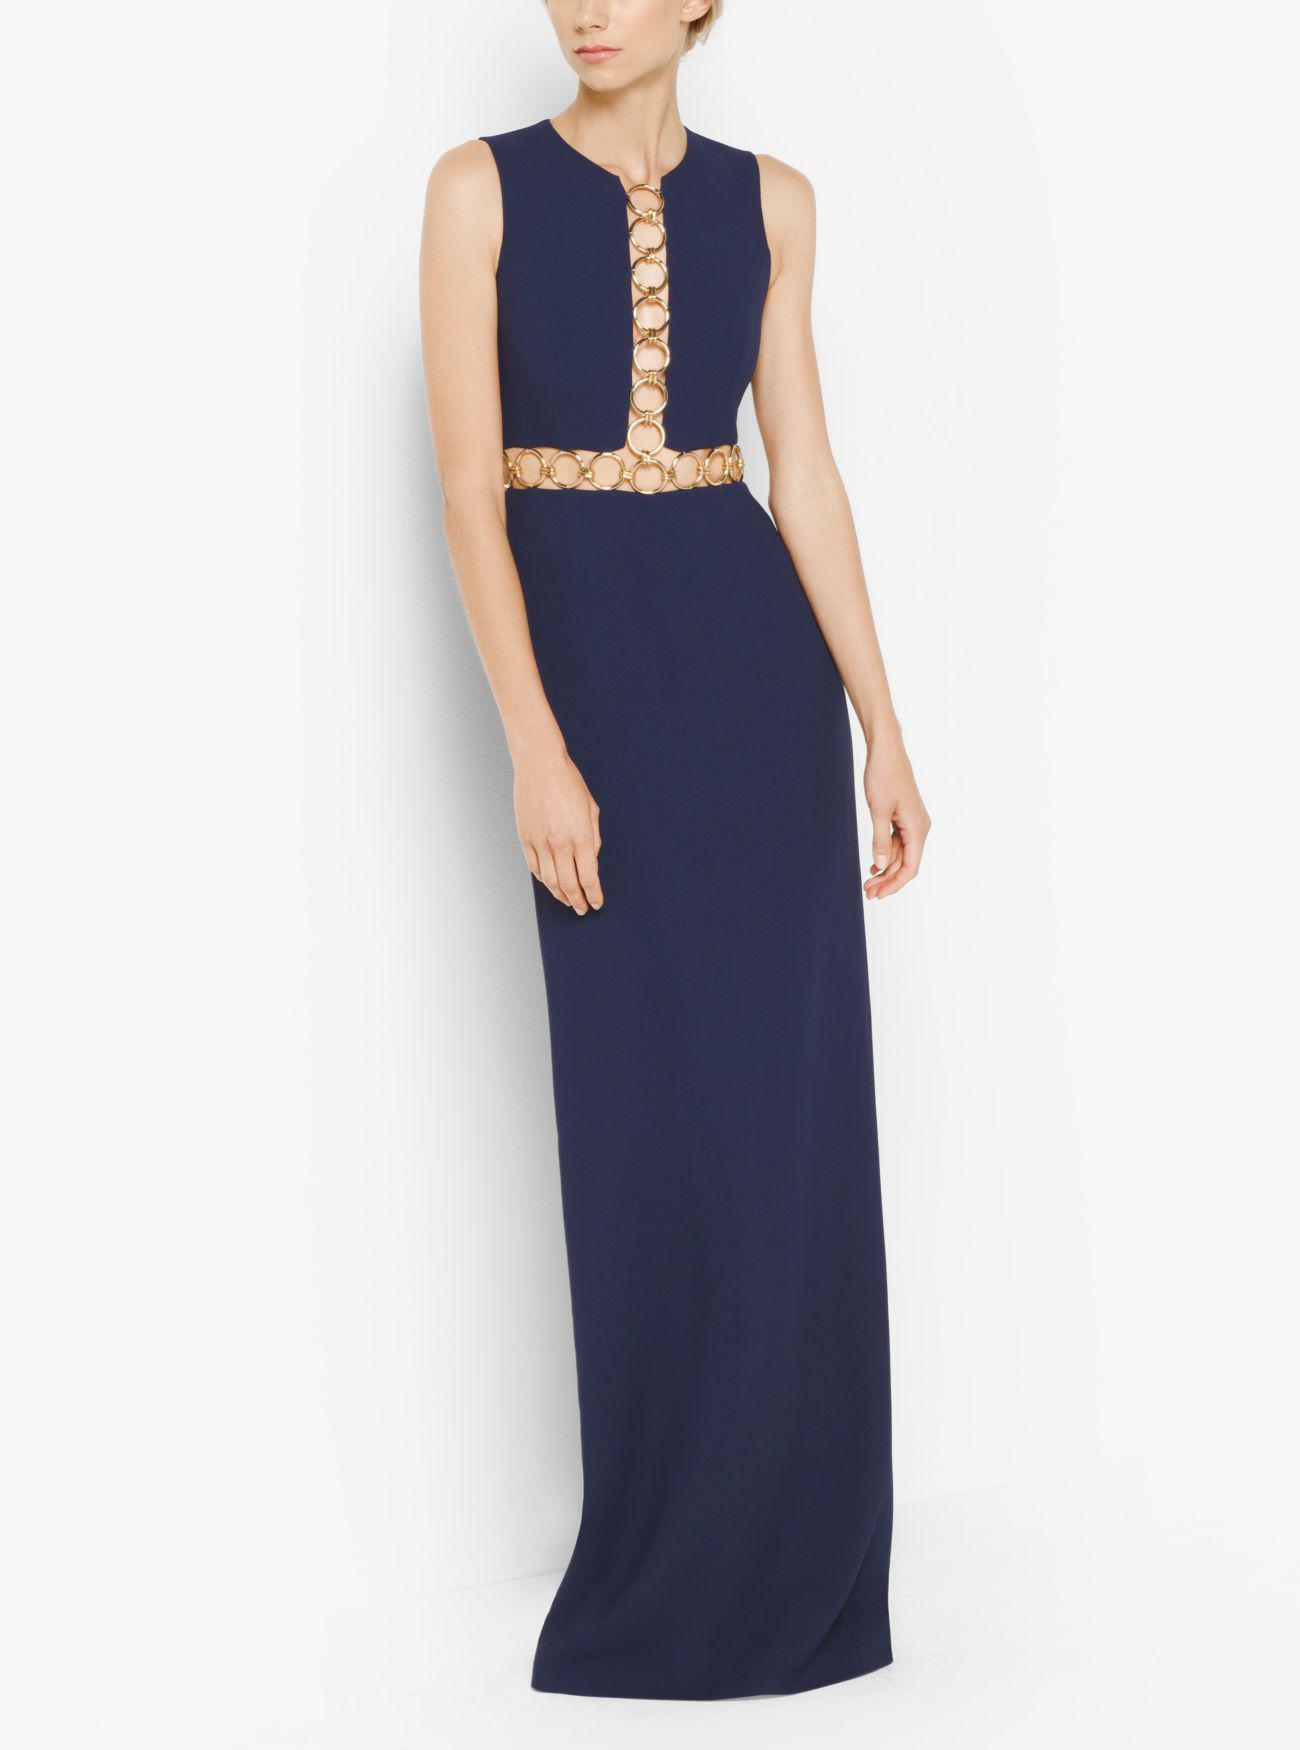 Lyst - Michael Kors Ring-detailed Double-face Crepe Sablé Gown in Blue